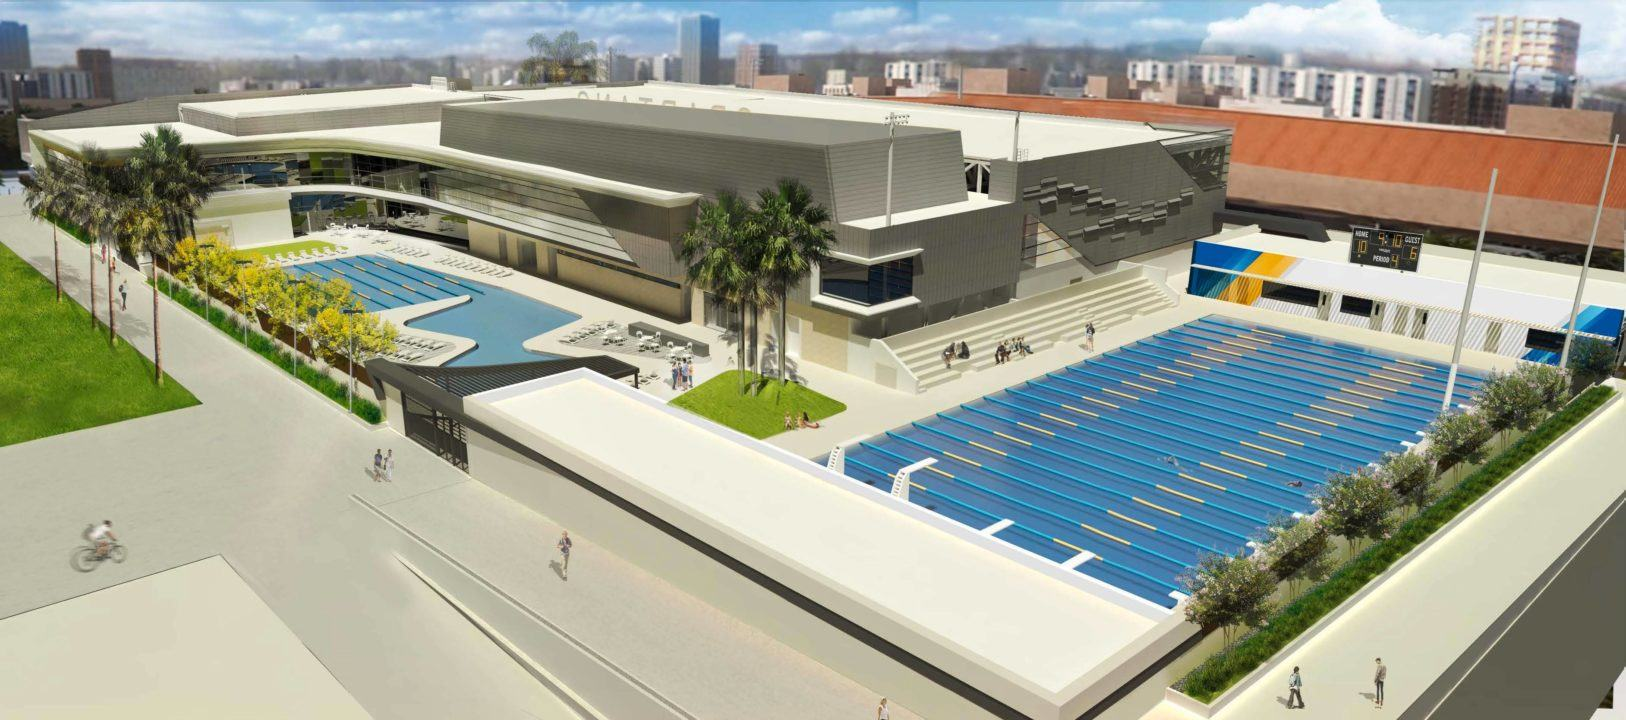 San Jose State Breaks Ground on New On-Campus Aquatic Center